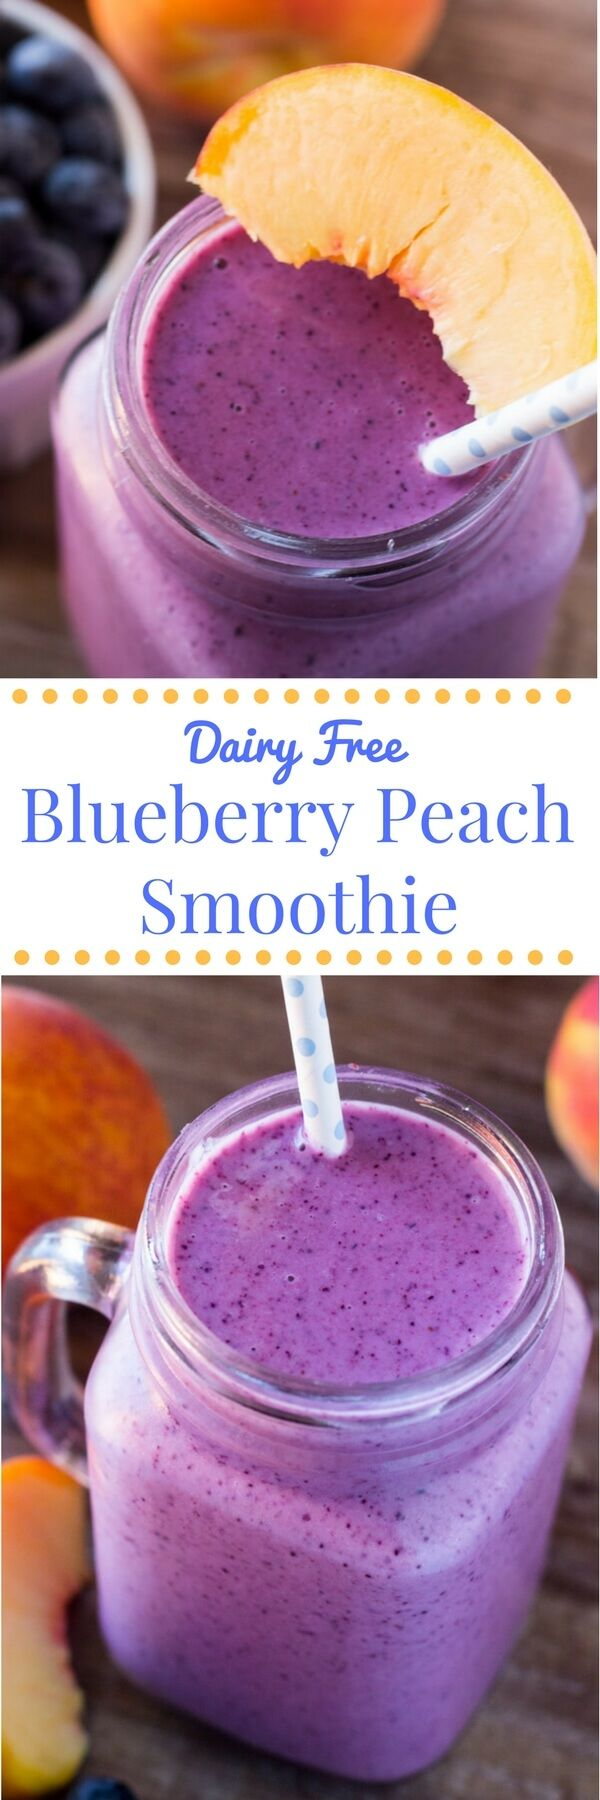 This blueberry peach smoothie with almond milk is dairy free, naturally sweetened & so delicious from the fresh summer fruit. 4 ingredients & perfectly refreshing!